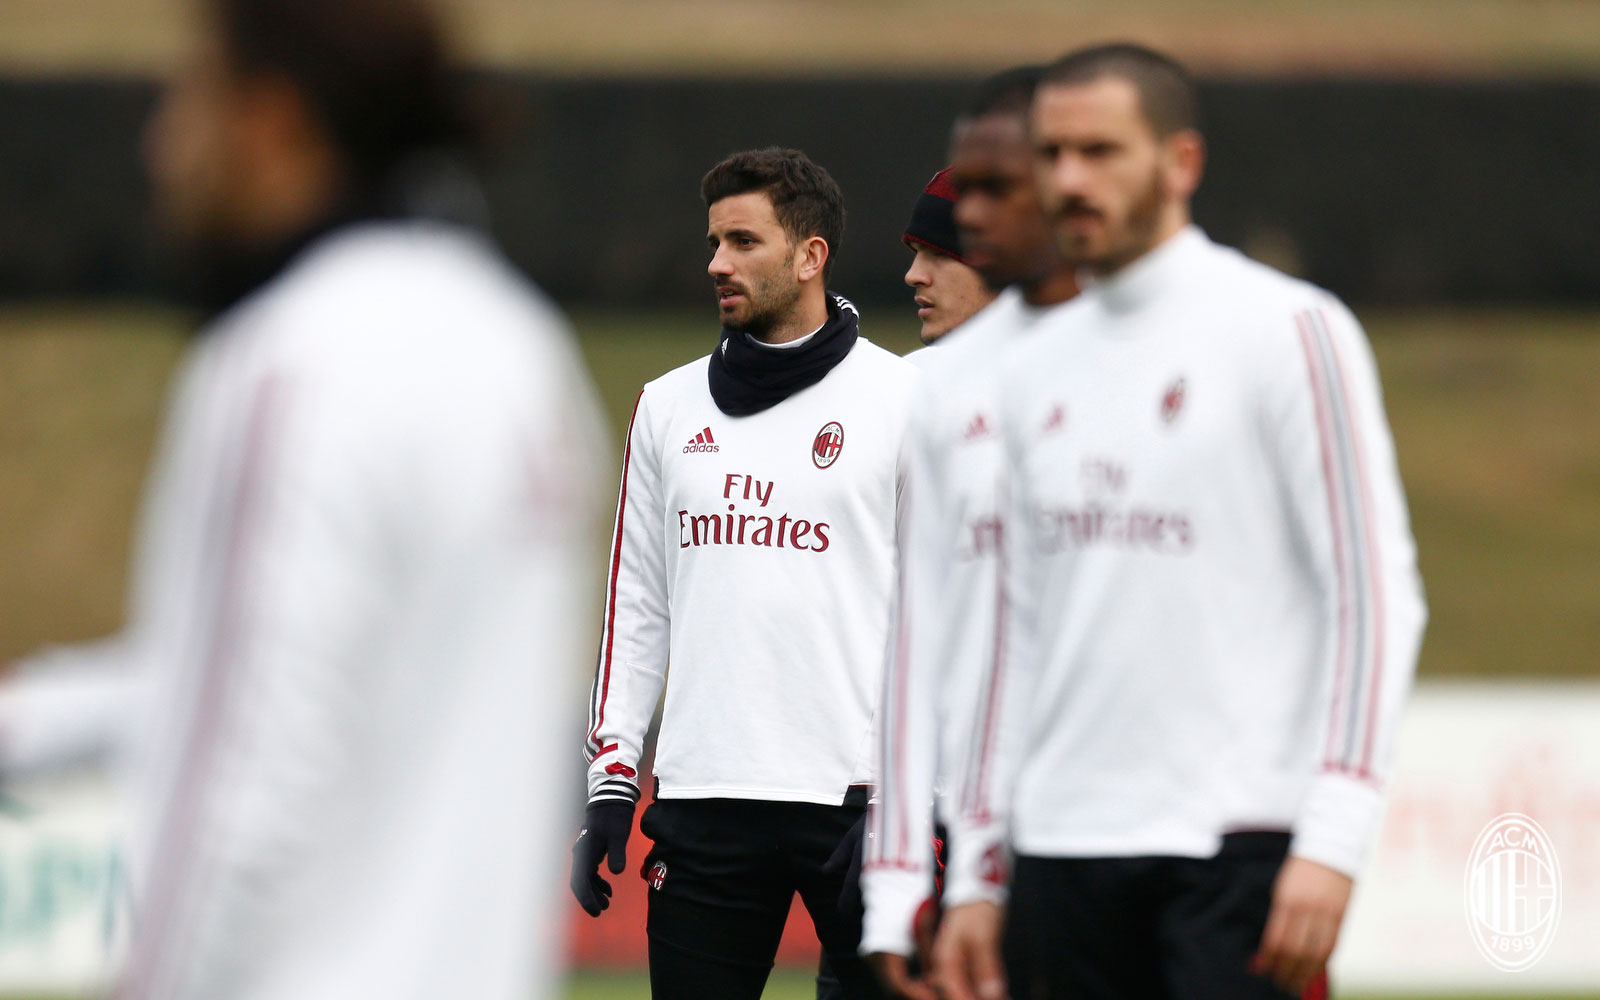 Mateo Musacchio during training at Milanello. (@acmilan.com)